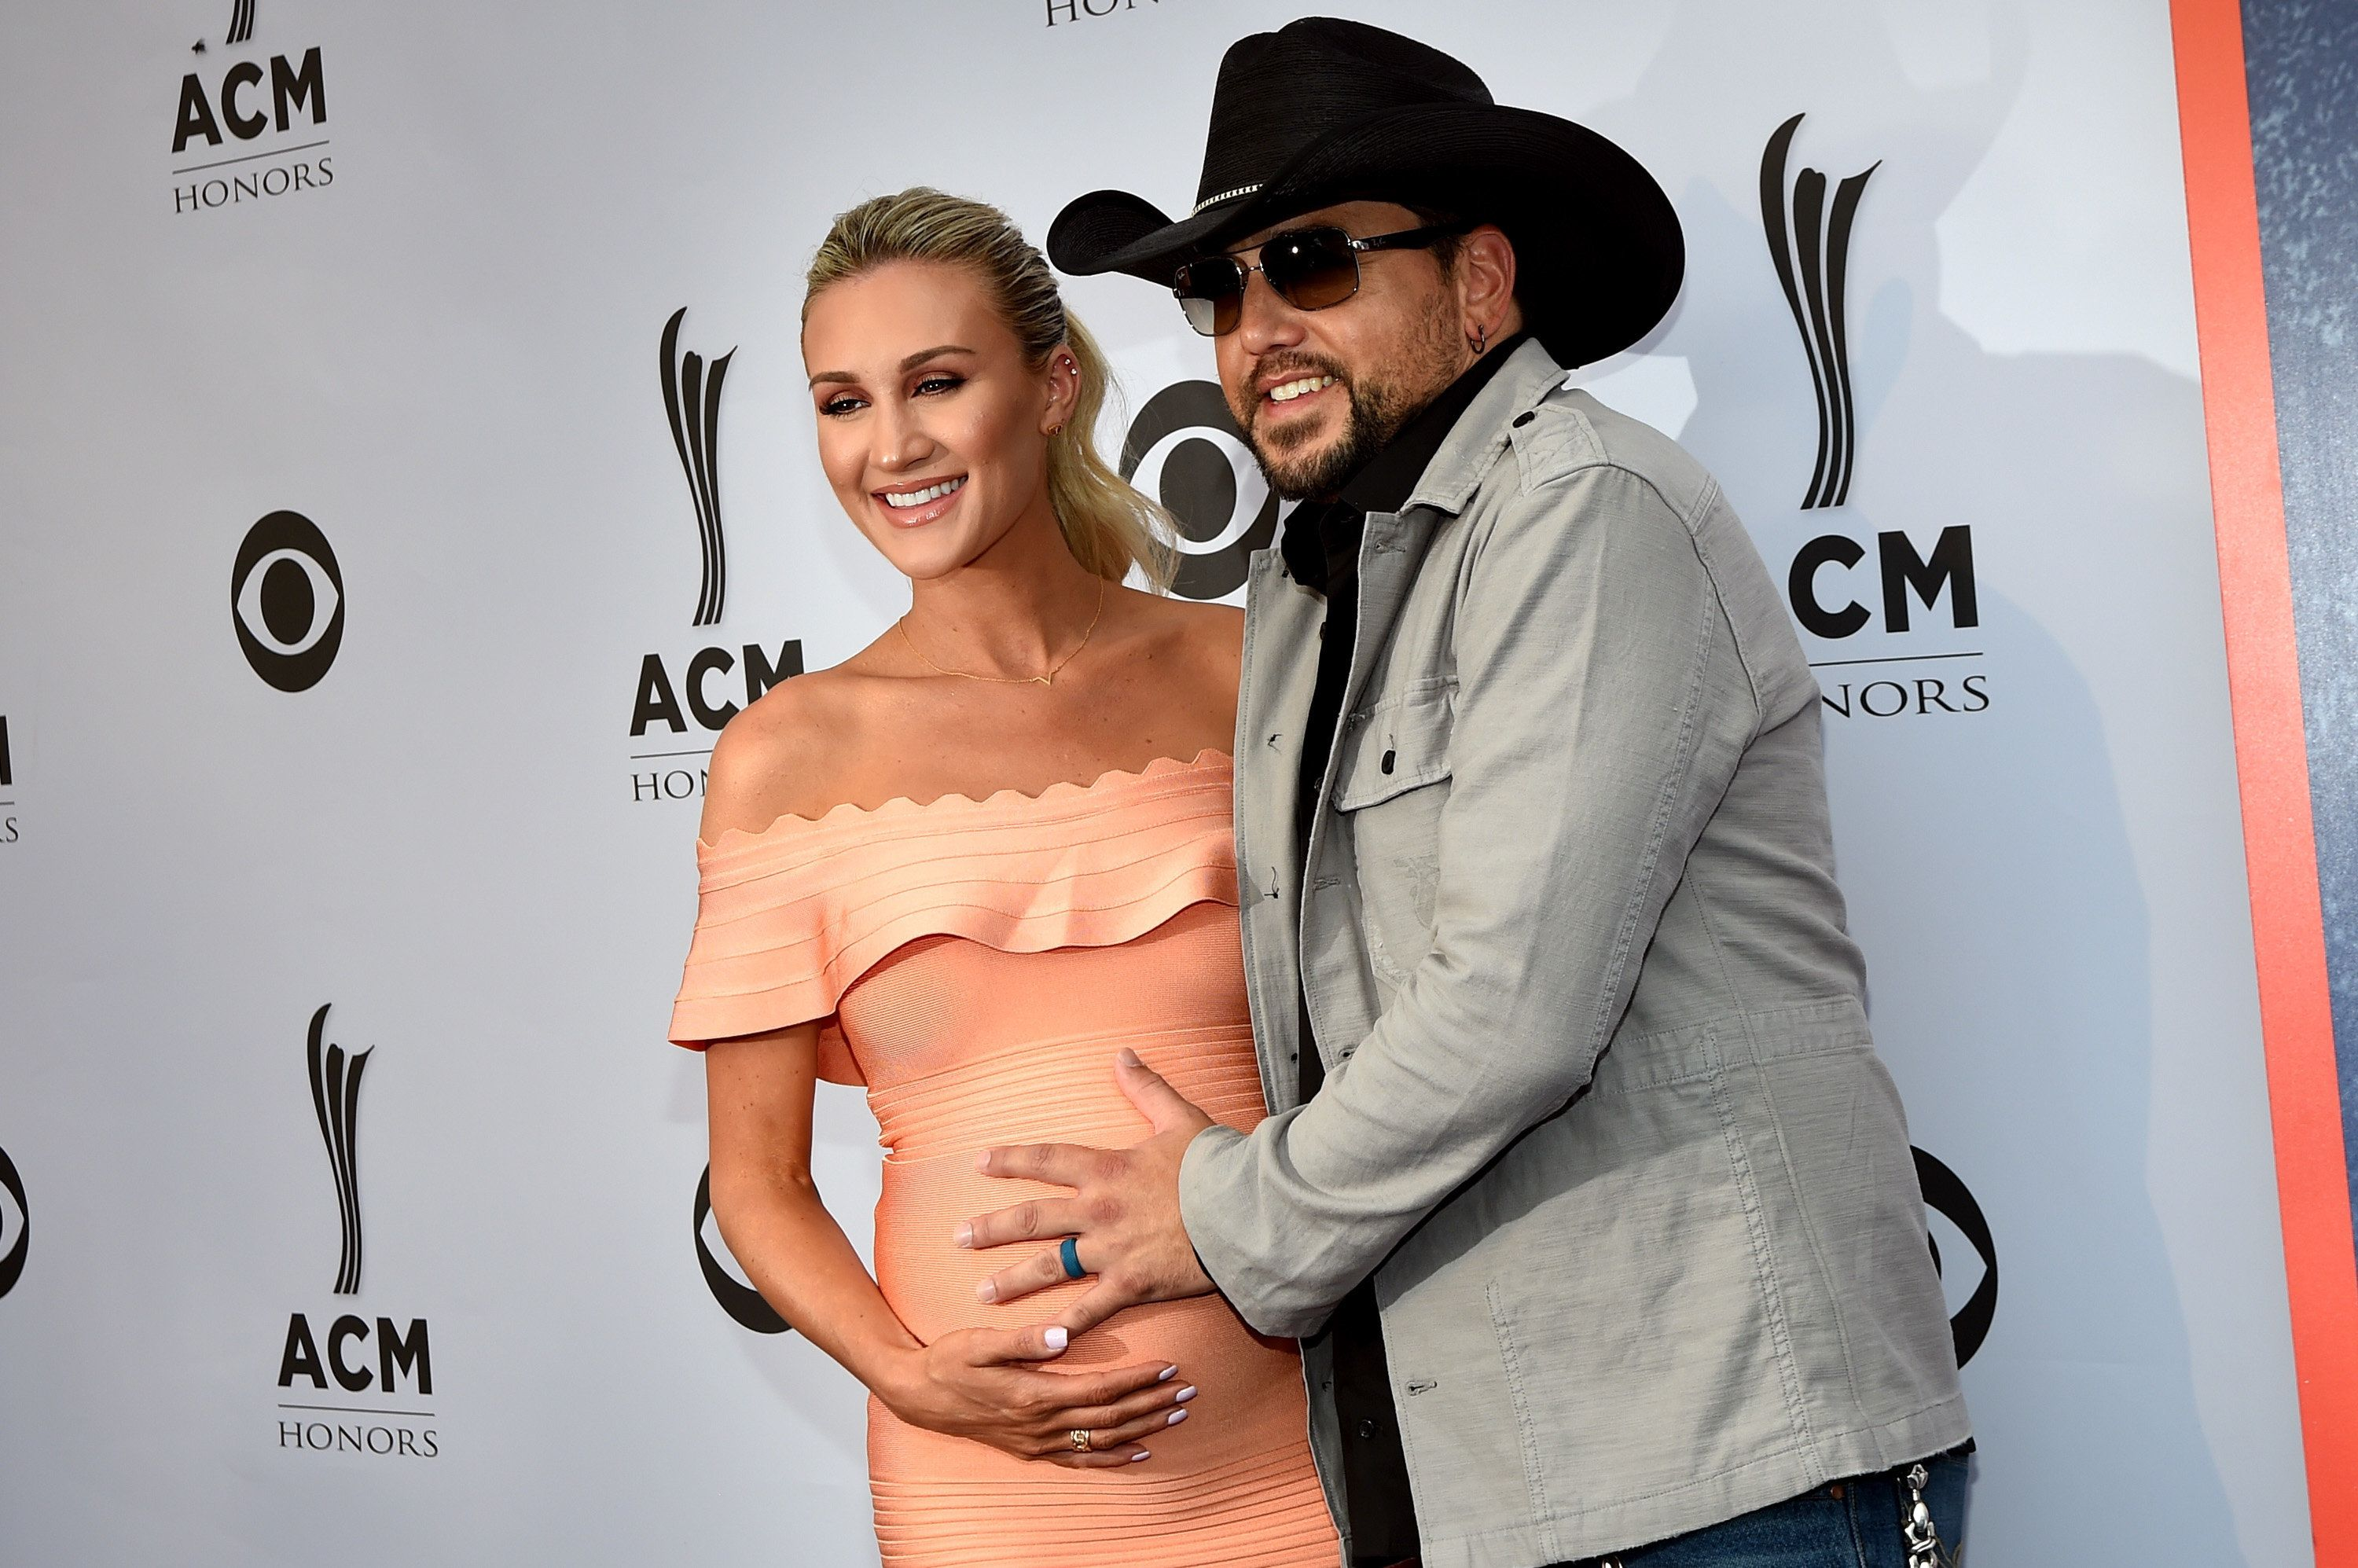 NASHVILLE, TN - AUGUST 23:  Brittany Kerr and singer-songwriter Jason Aldean the 11th Annual ACM Honors at the Ryman Auditorium on August 23, 2017 in Nashville, Tennessee.  (Photo by Rick Diamond/Getty Images for ACM)